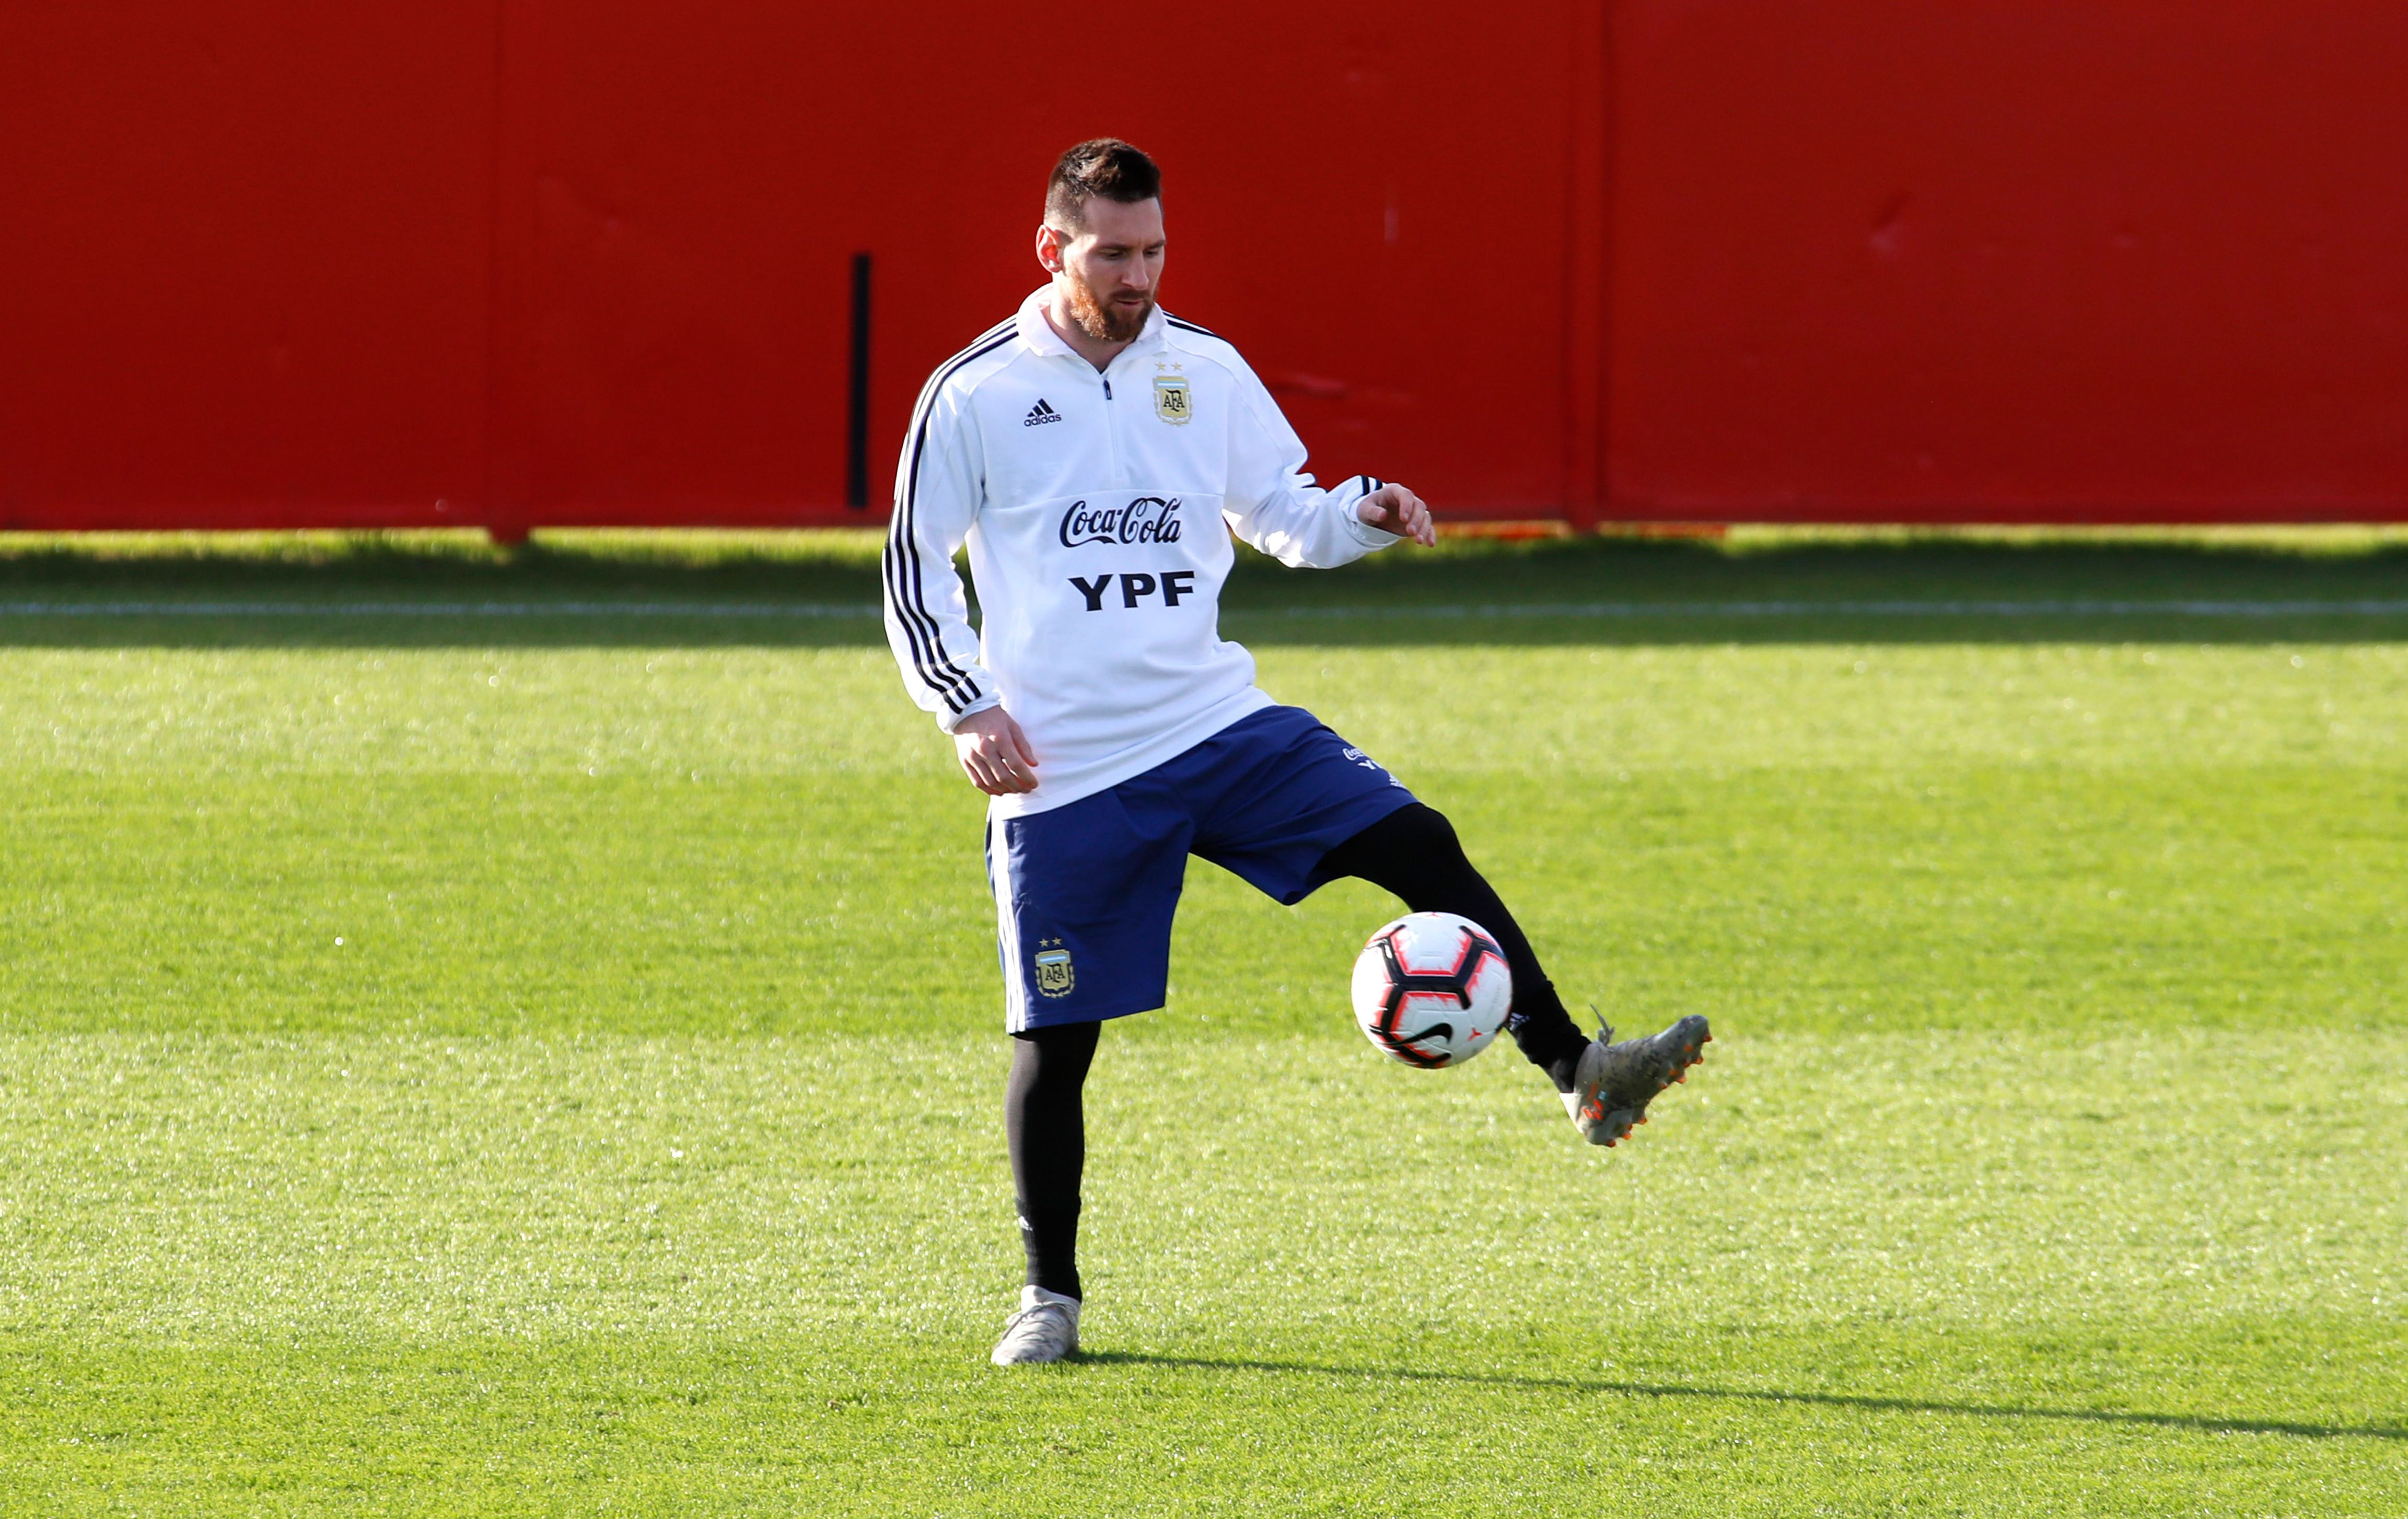 Messi is back on the international football stage after a three-month ban (Photo by JAIME REINA/AFP via Getty Images)